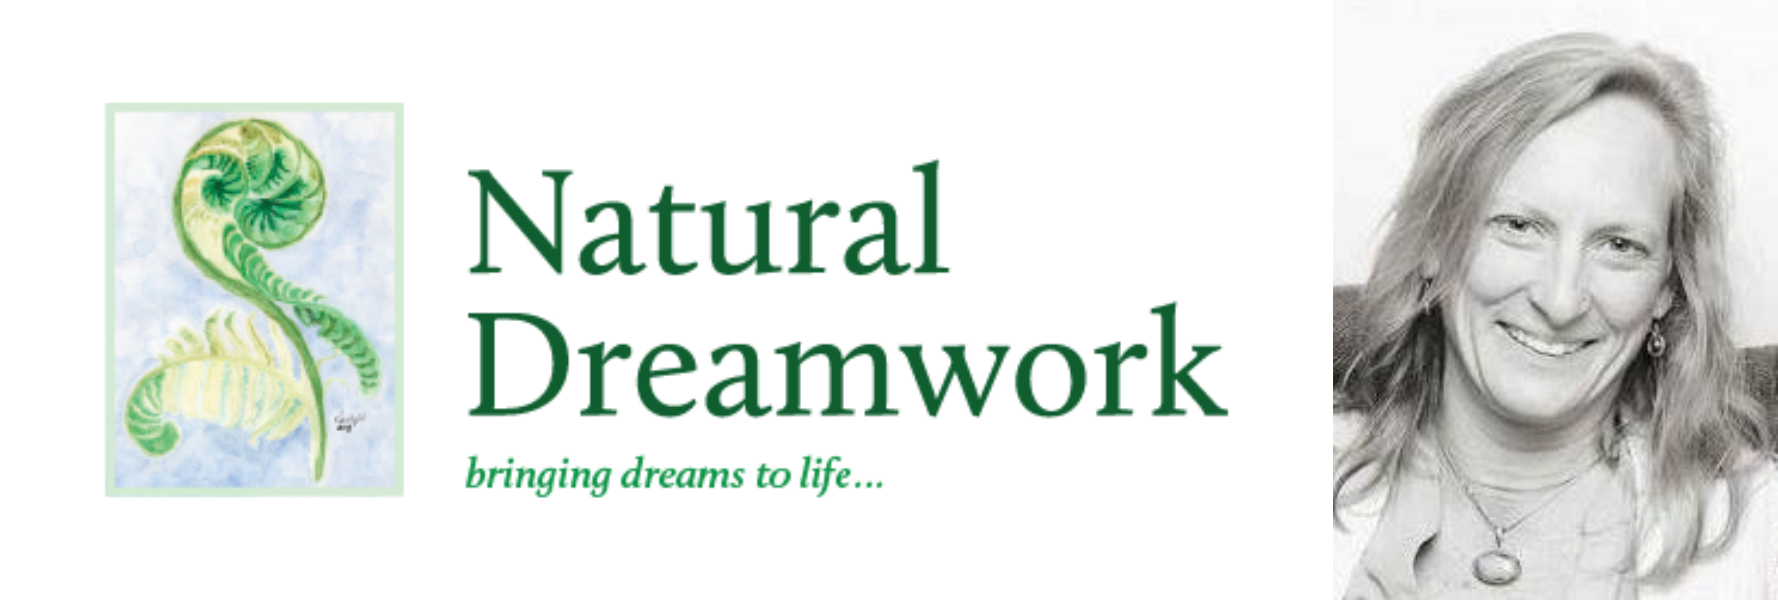 natural dreamwork primary logo color side